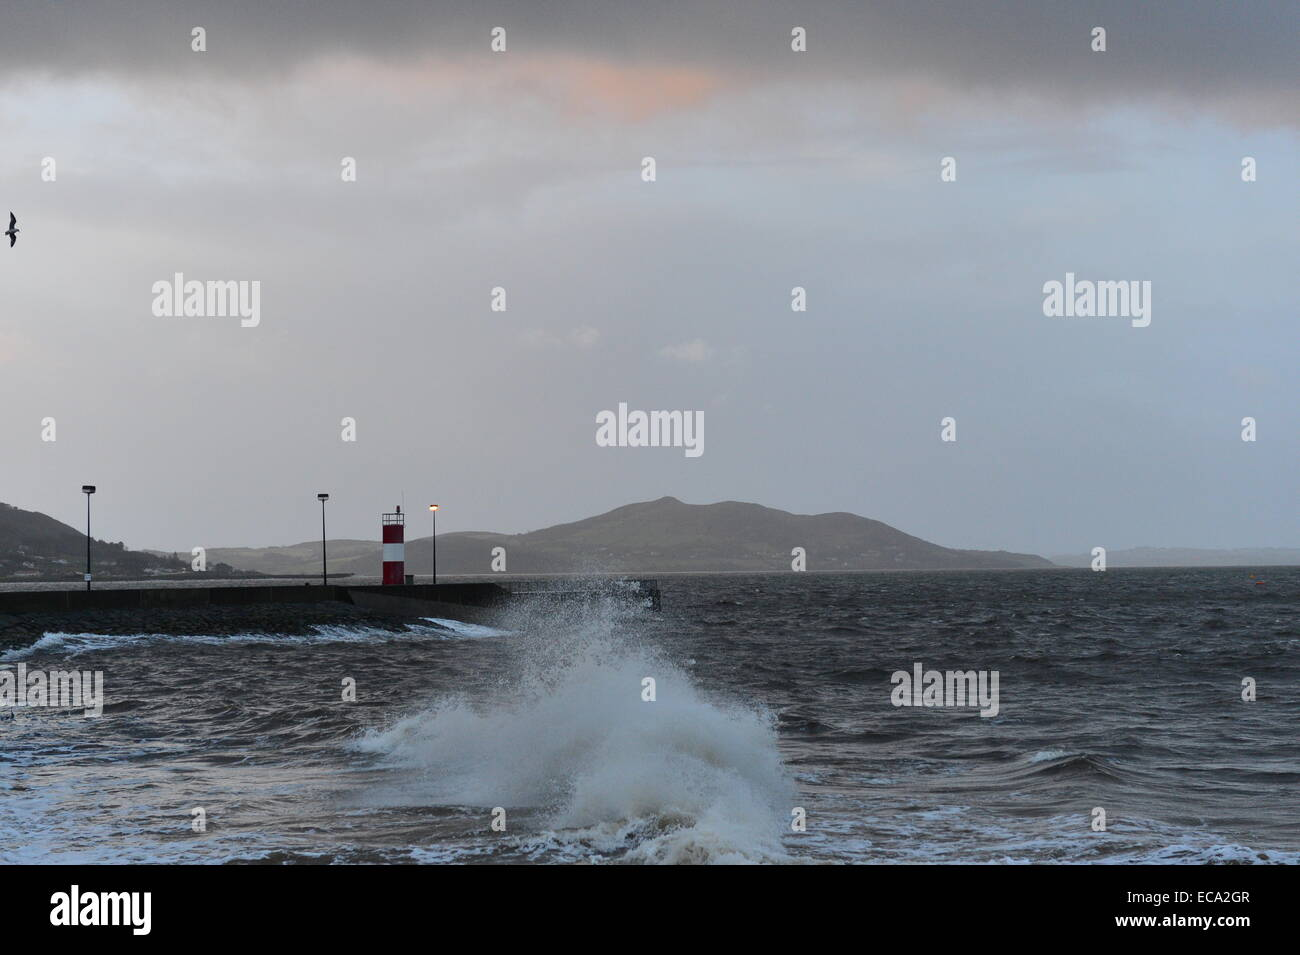 Donegal Coast, Ireland. 11th December, 2014. Ireland Weather: Gale force winds and high waves at Buncrana Pier, - Stock Image